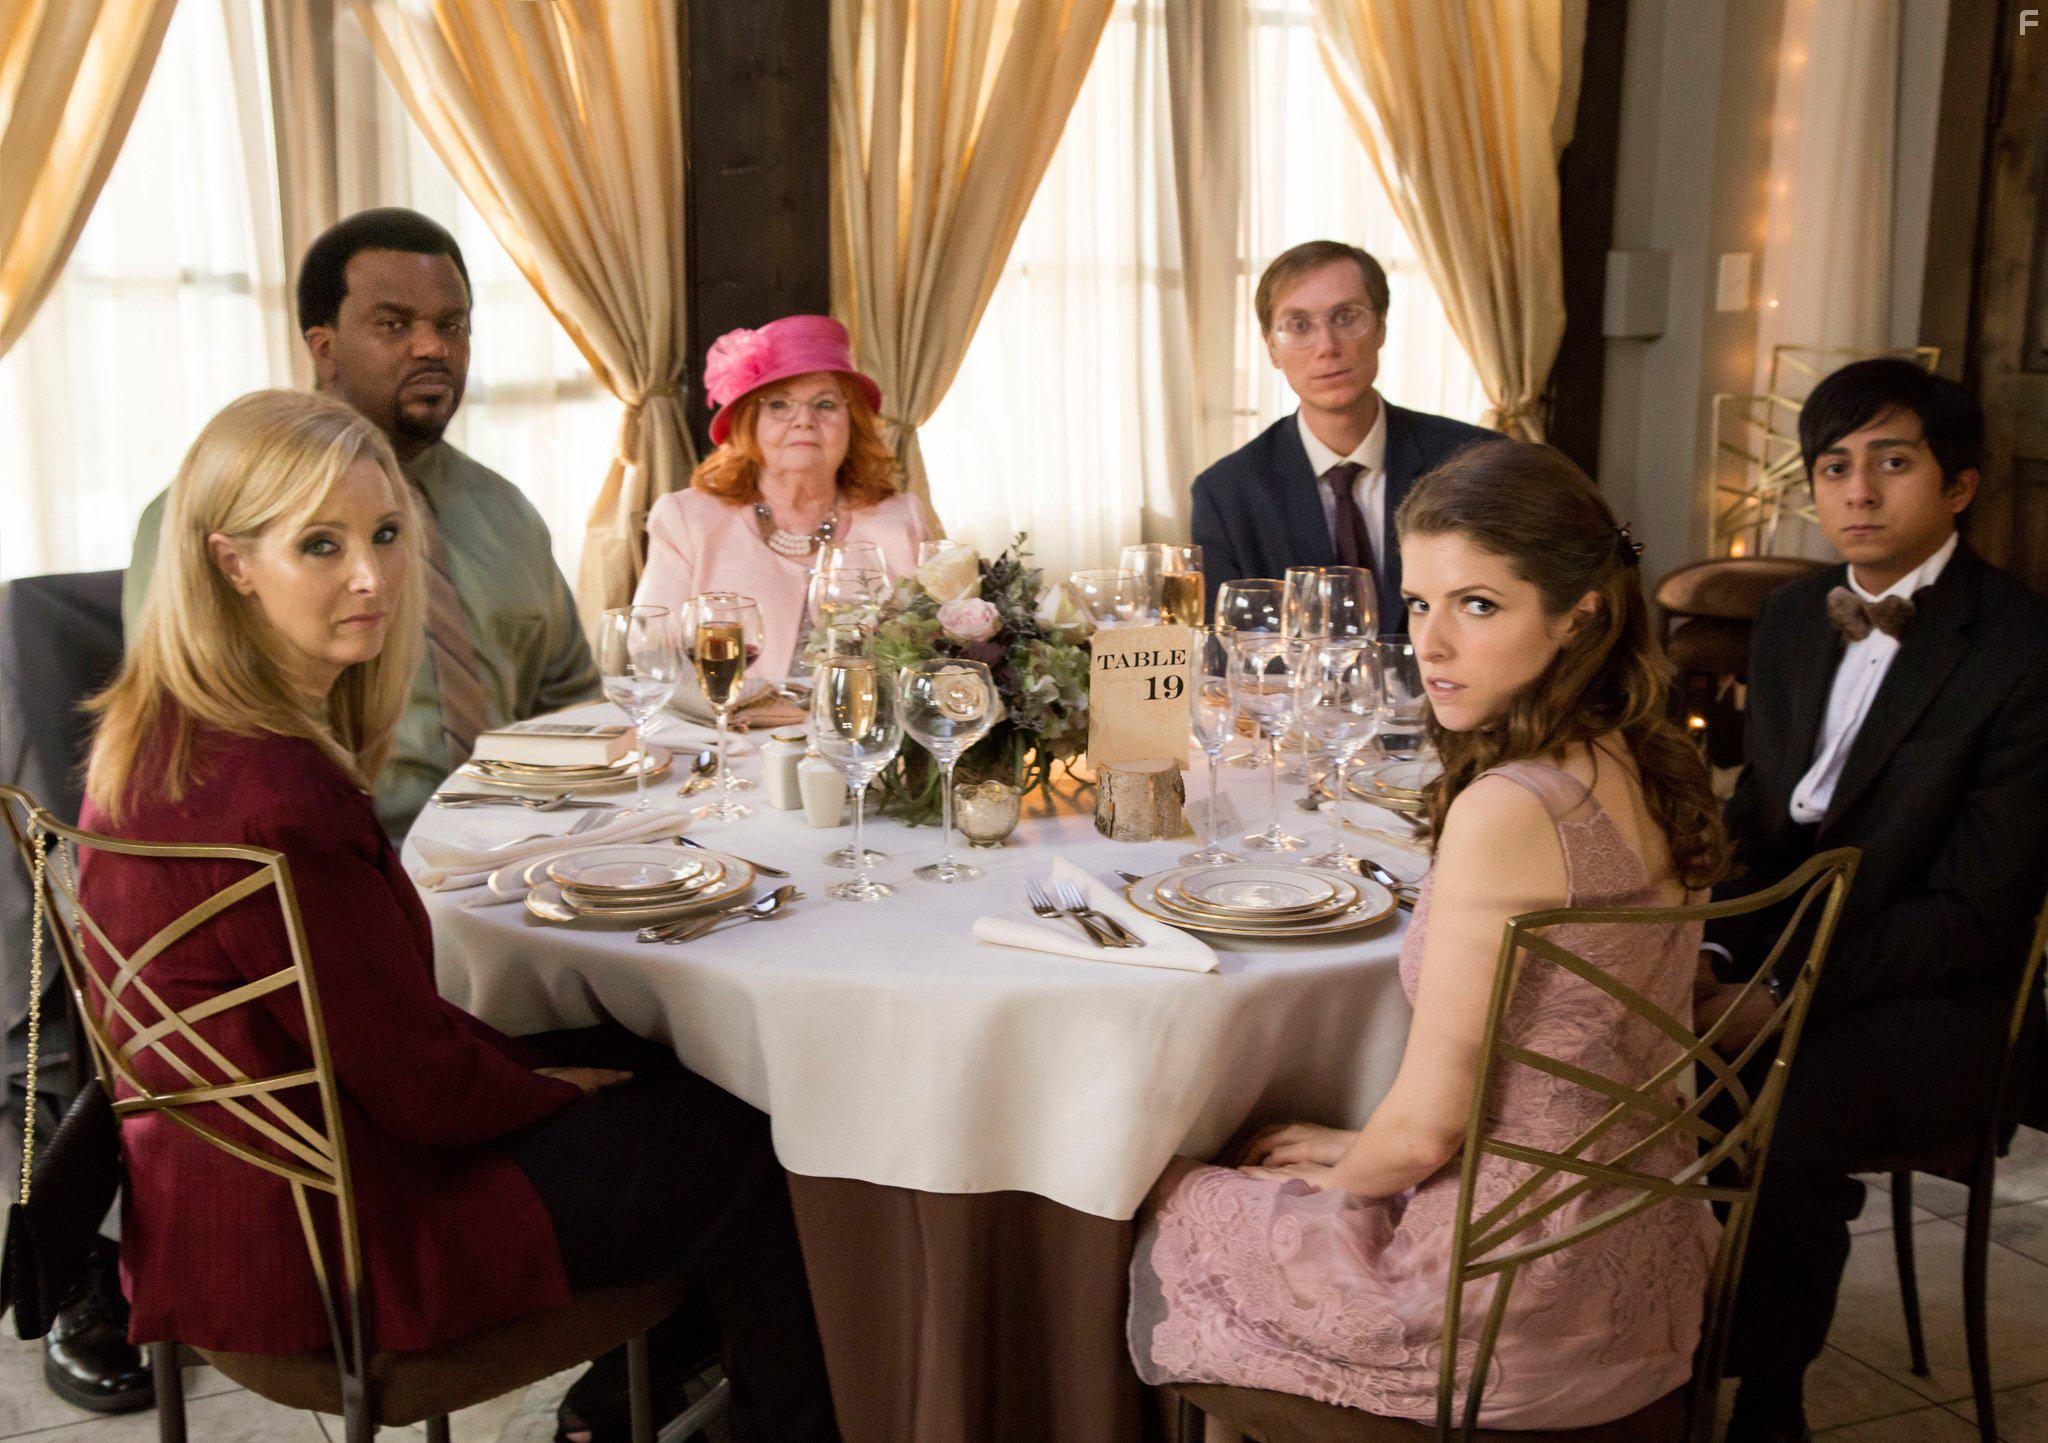 Table 19, movie scene of the wedding guests sitting around the table